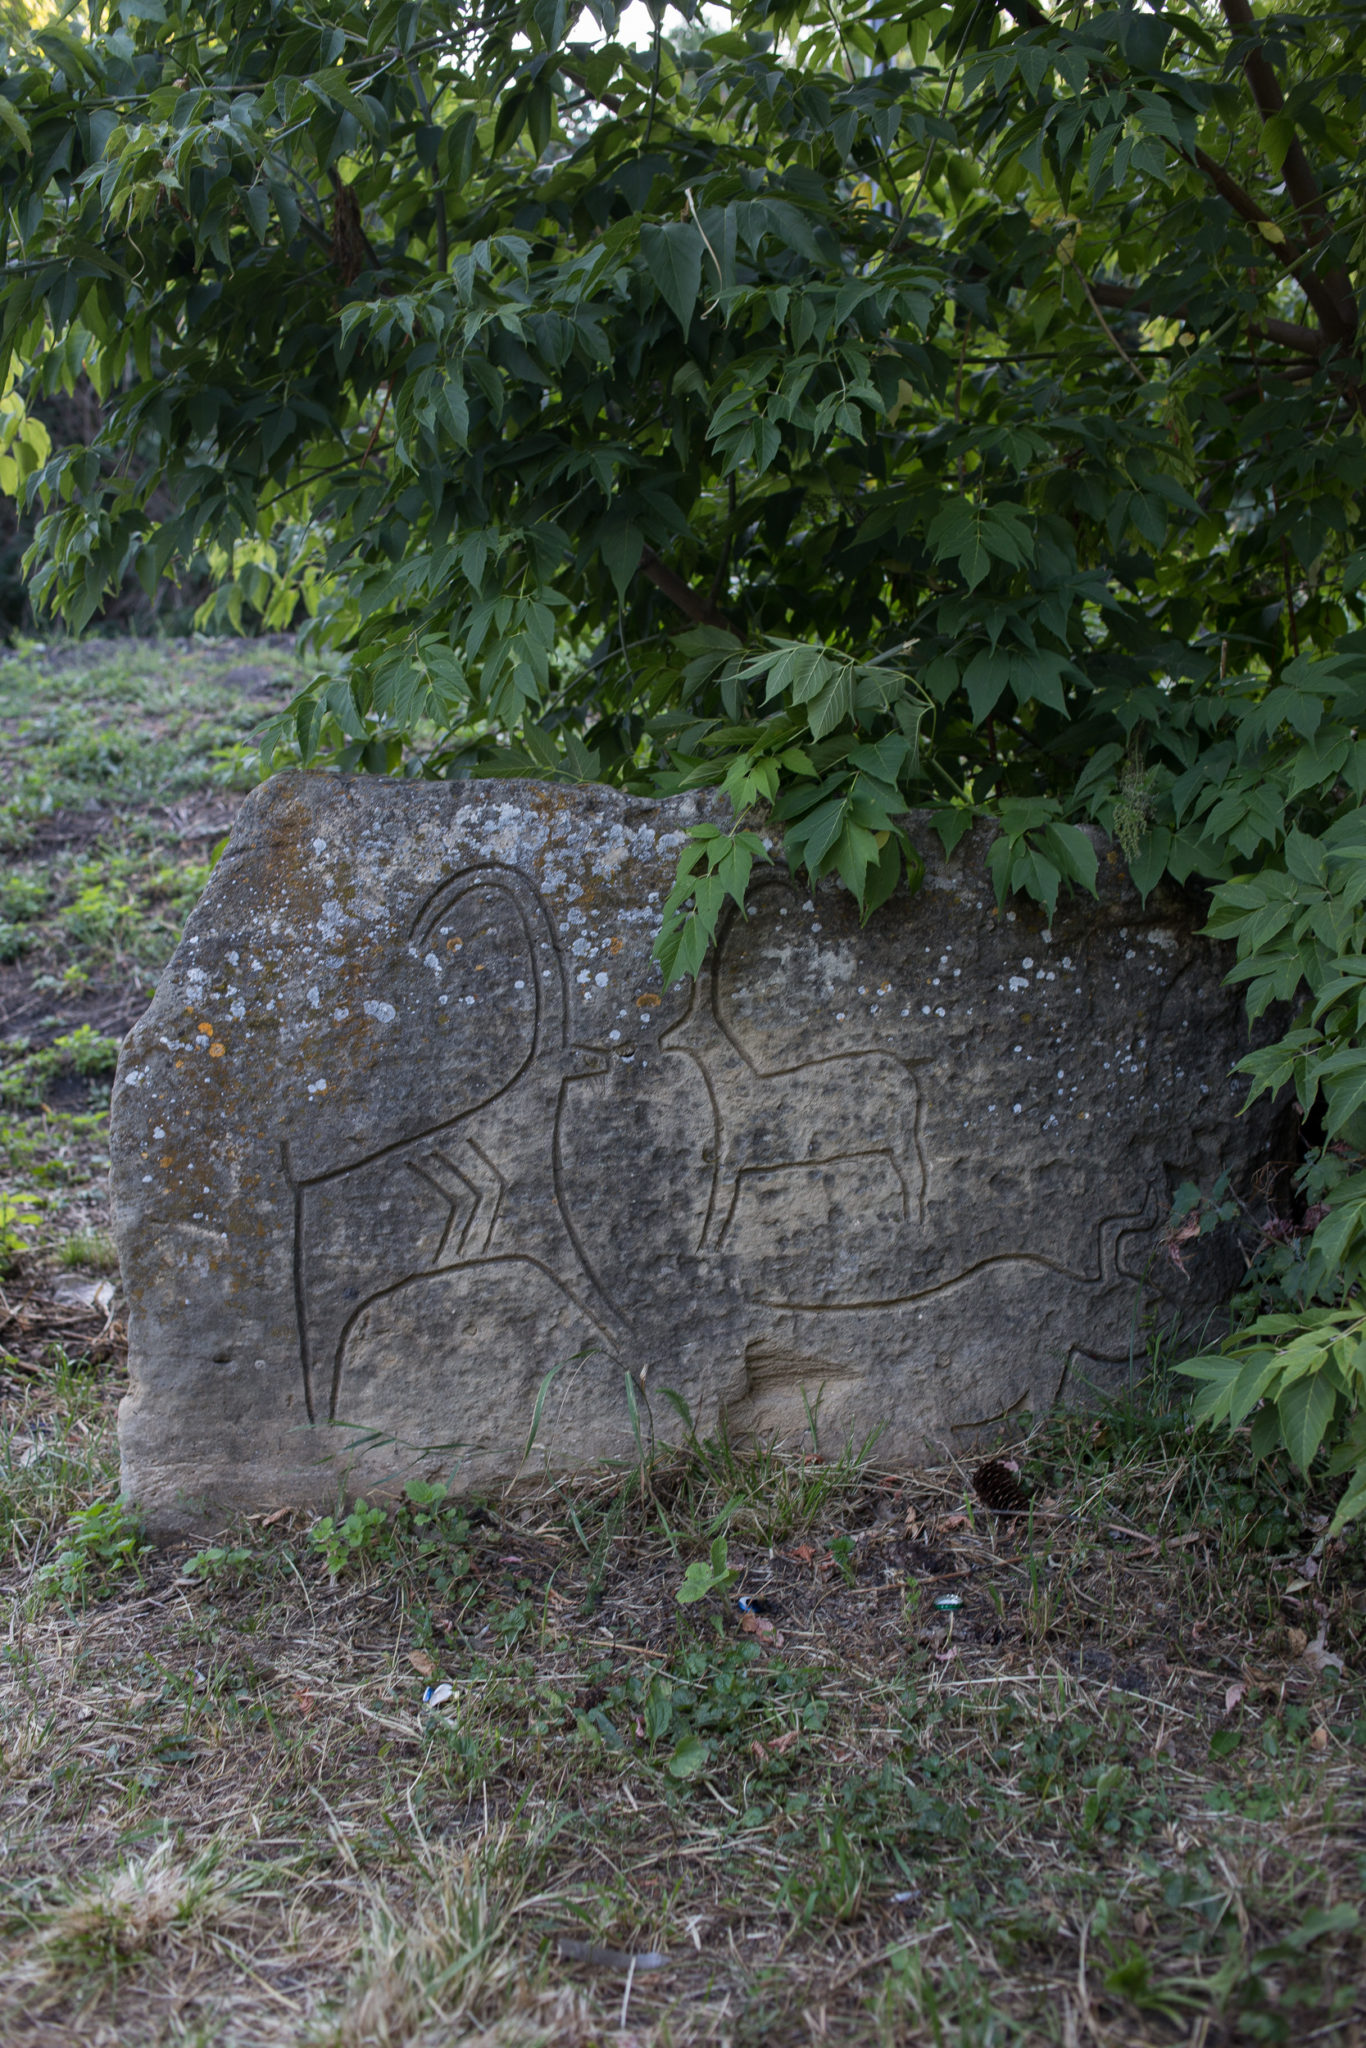 Mini Gobustan rock carvings, which depict primitive people, animals, battle-pieces, ritual dances, bullfights, boats with armed oarsmen, warriors with lances in their hands, camel caravans, pictures of sun an stars.